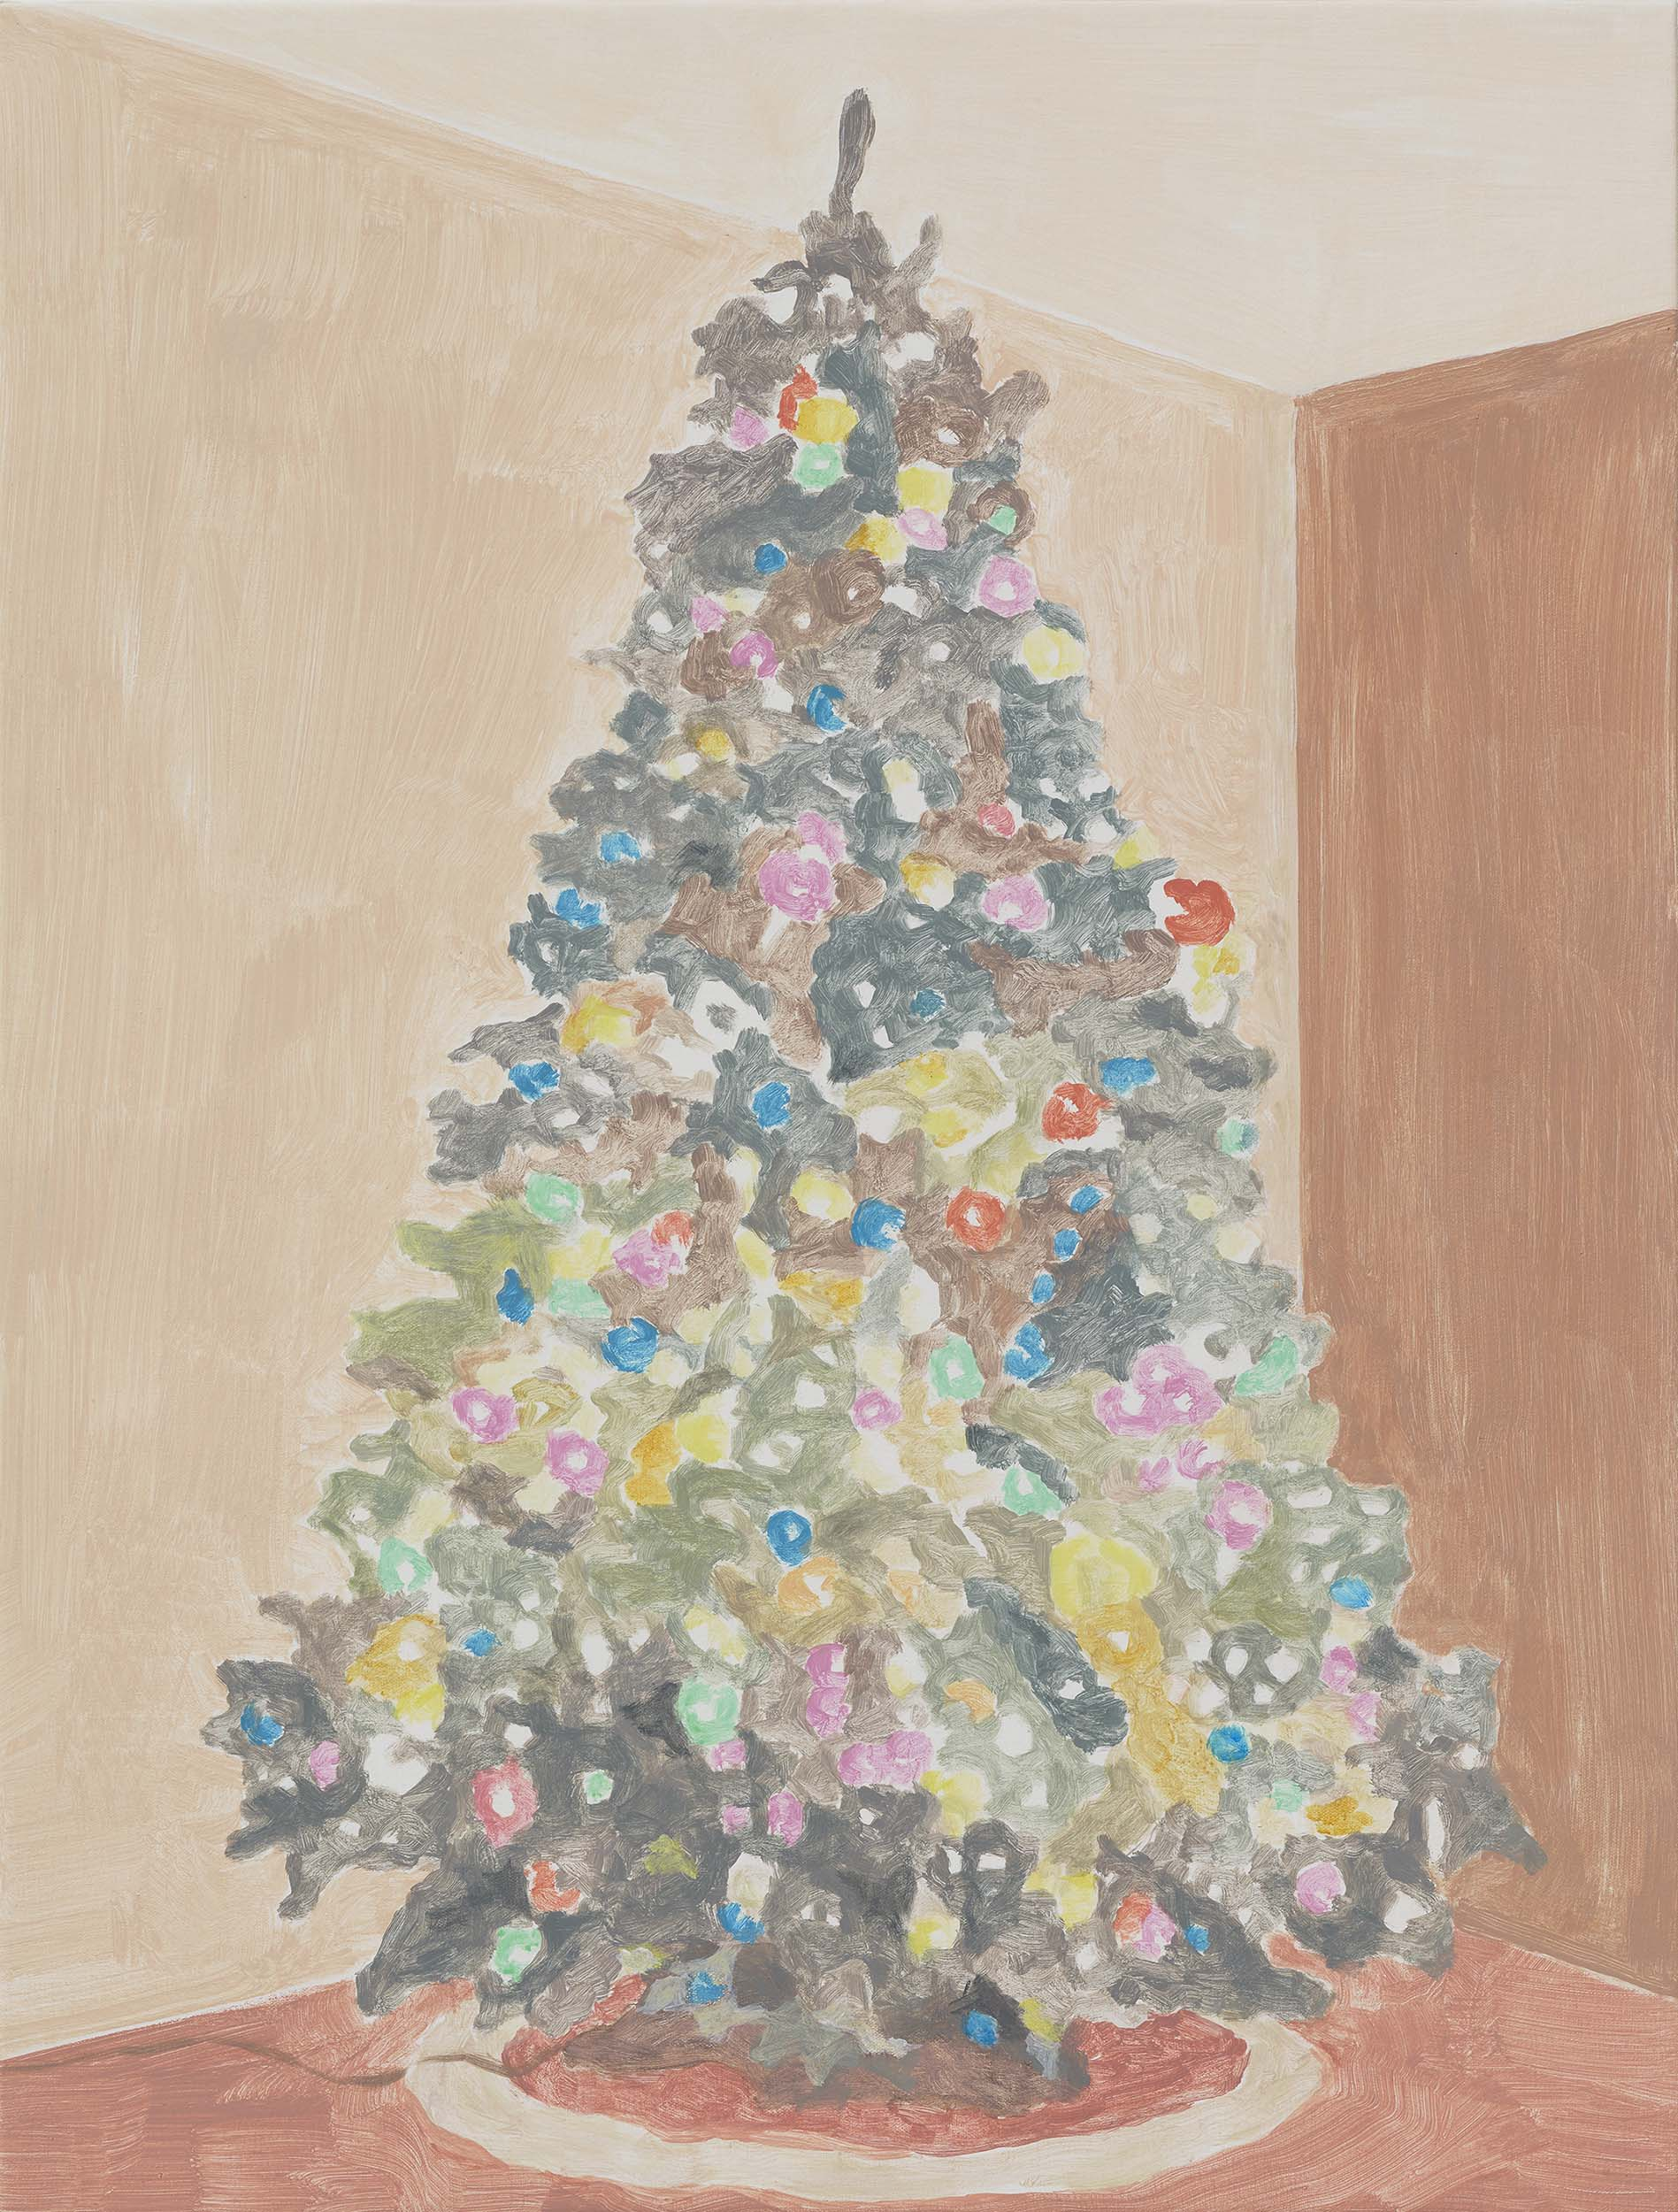 Xmas Tree (lights and round skirt), acrylic on canvas, 32 x 24.25 inches, 2015.